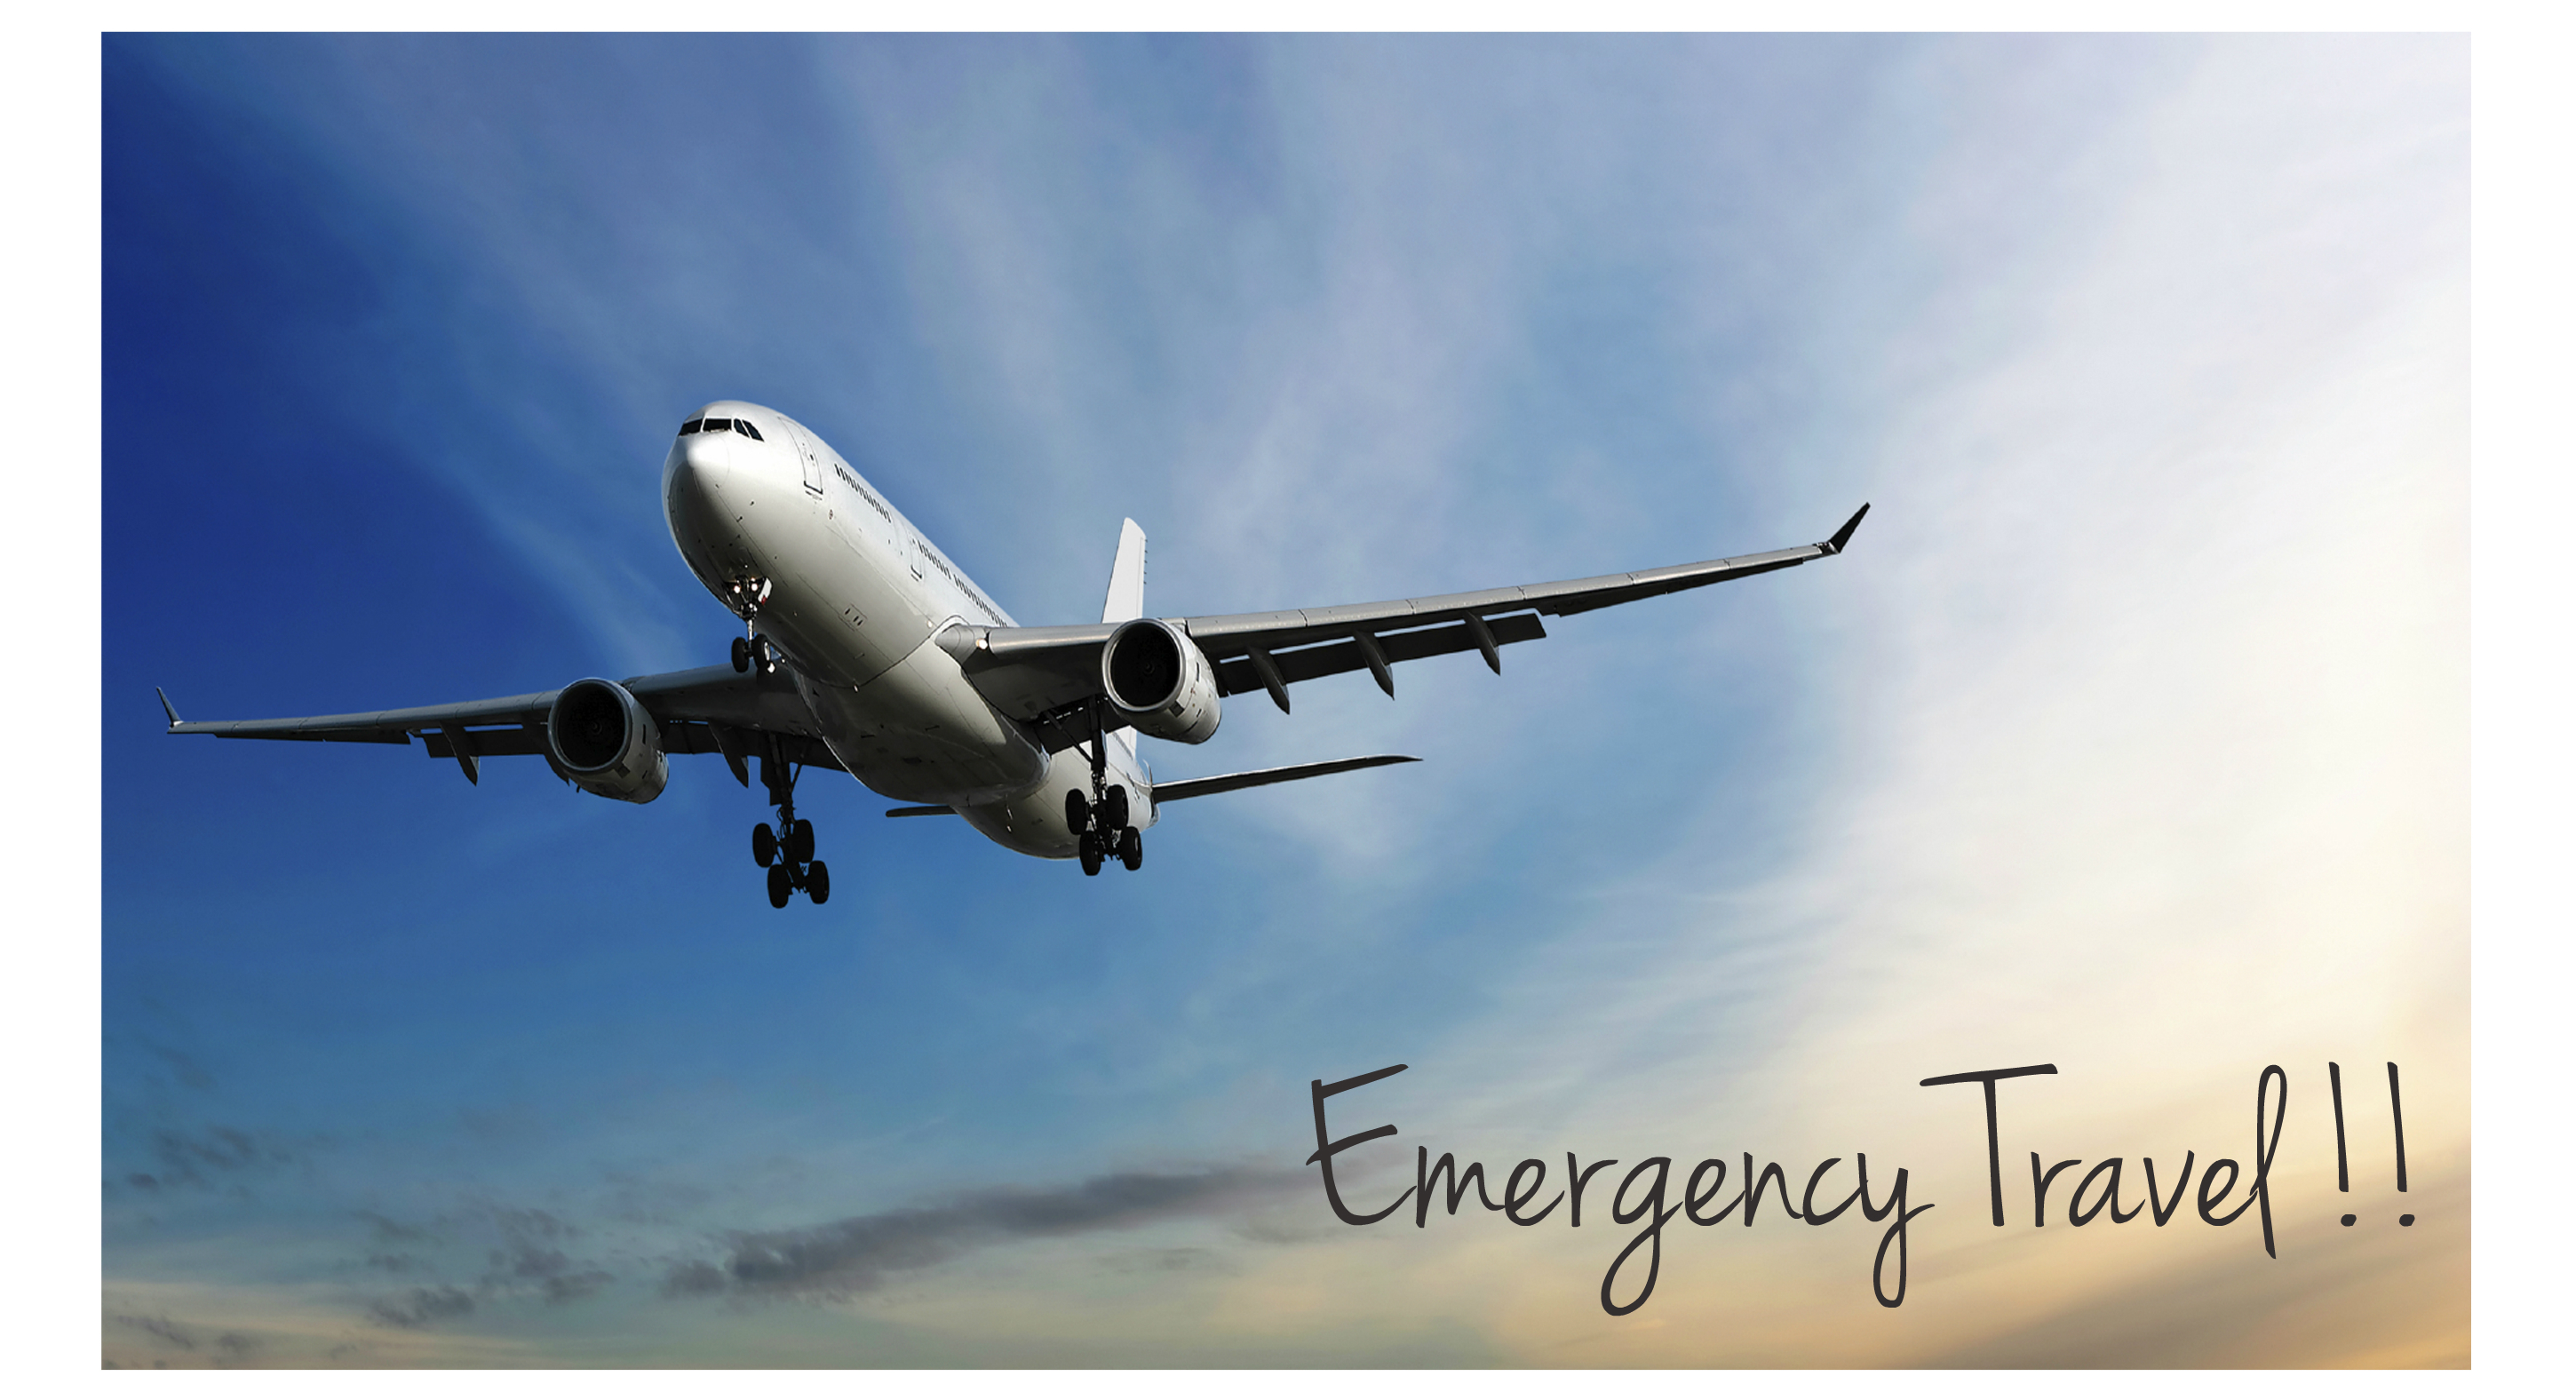 Emergency Travel